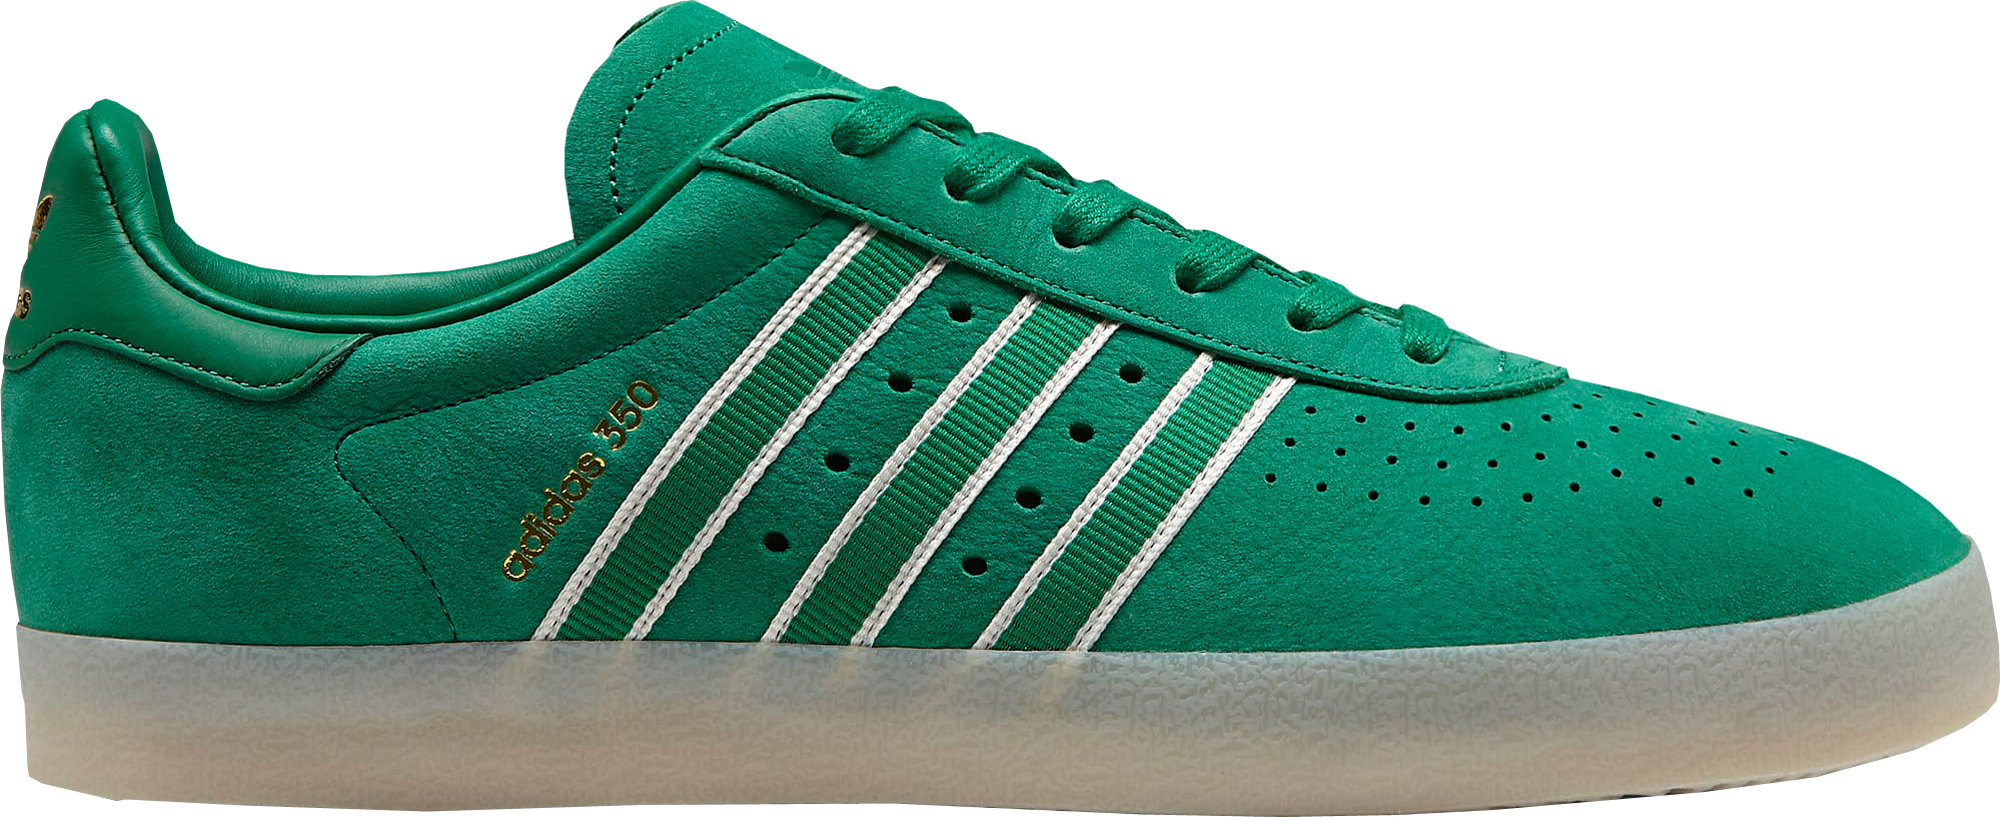 adidas 350 Oyster Holdings Green (Friends & Family)